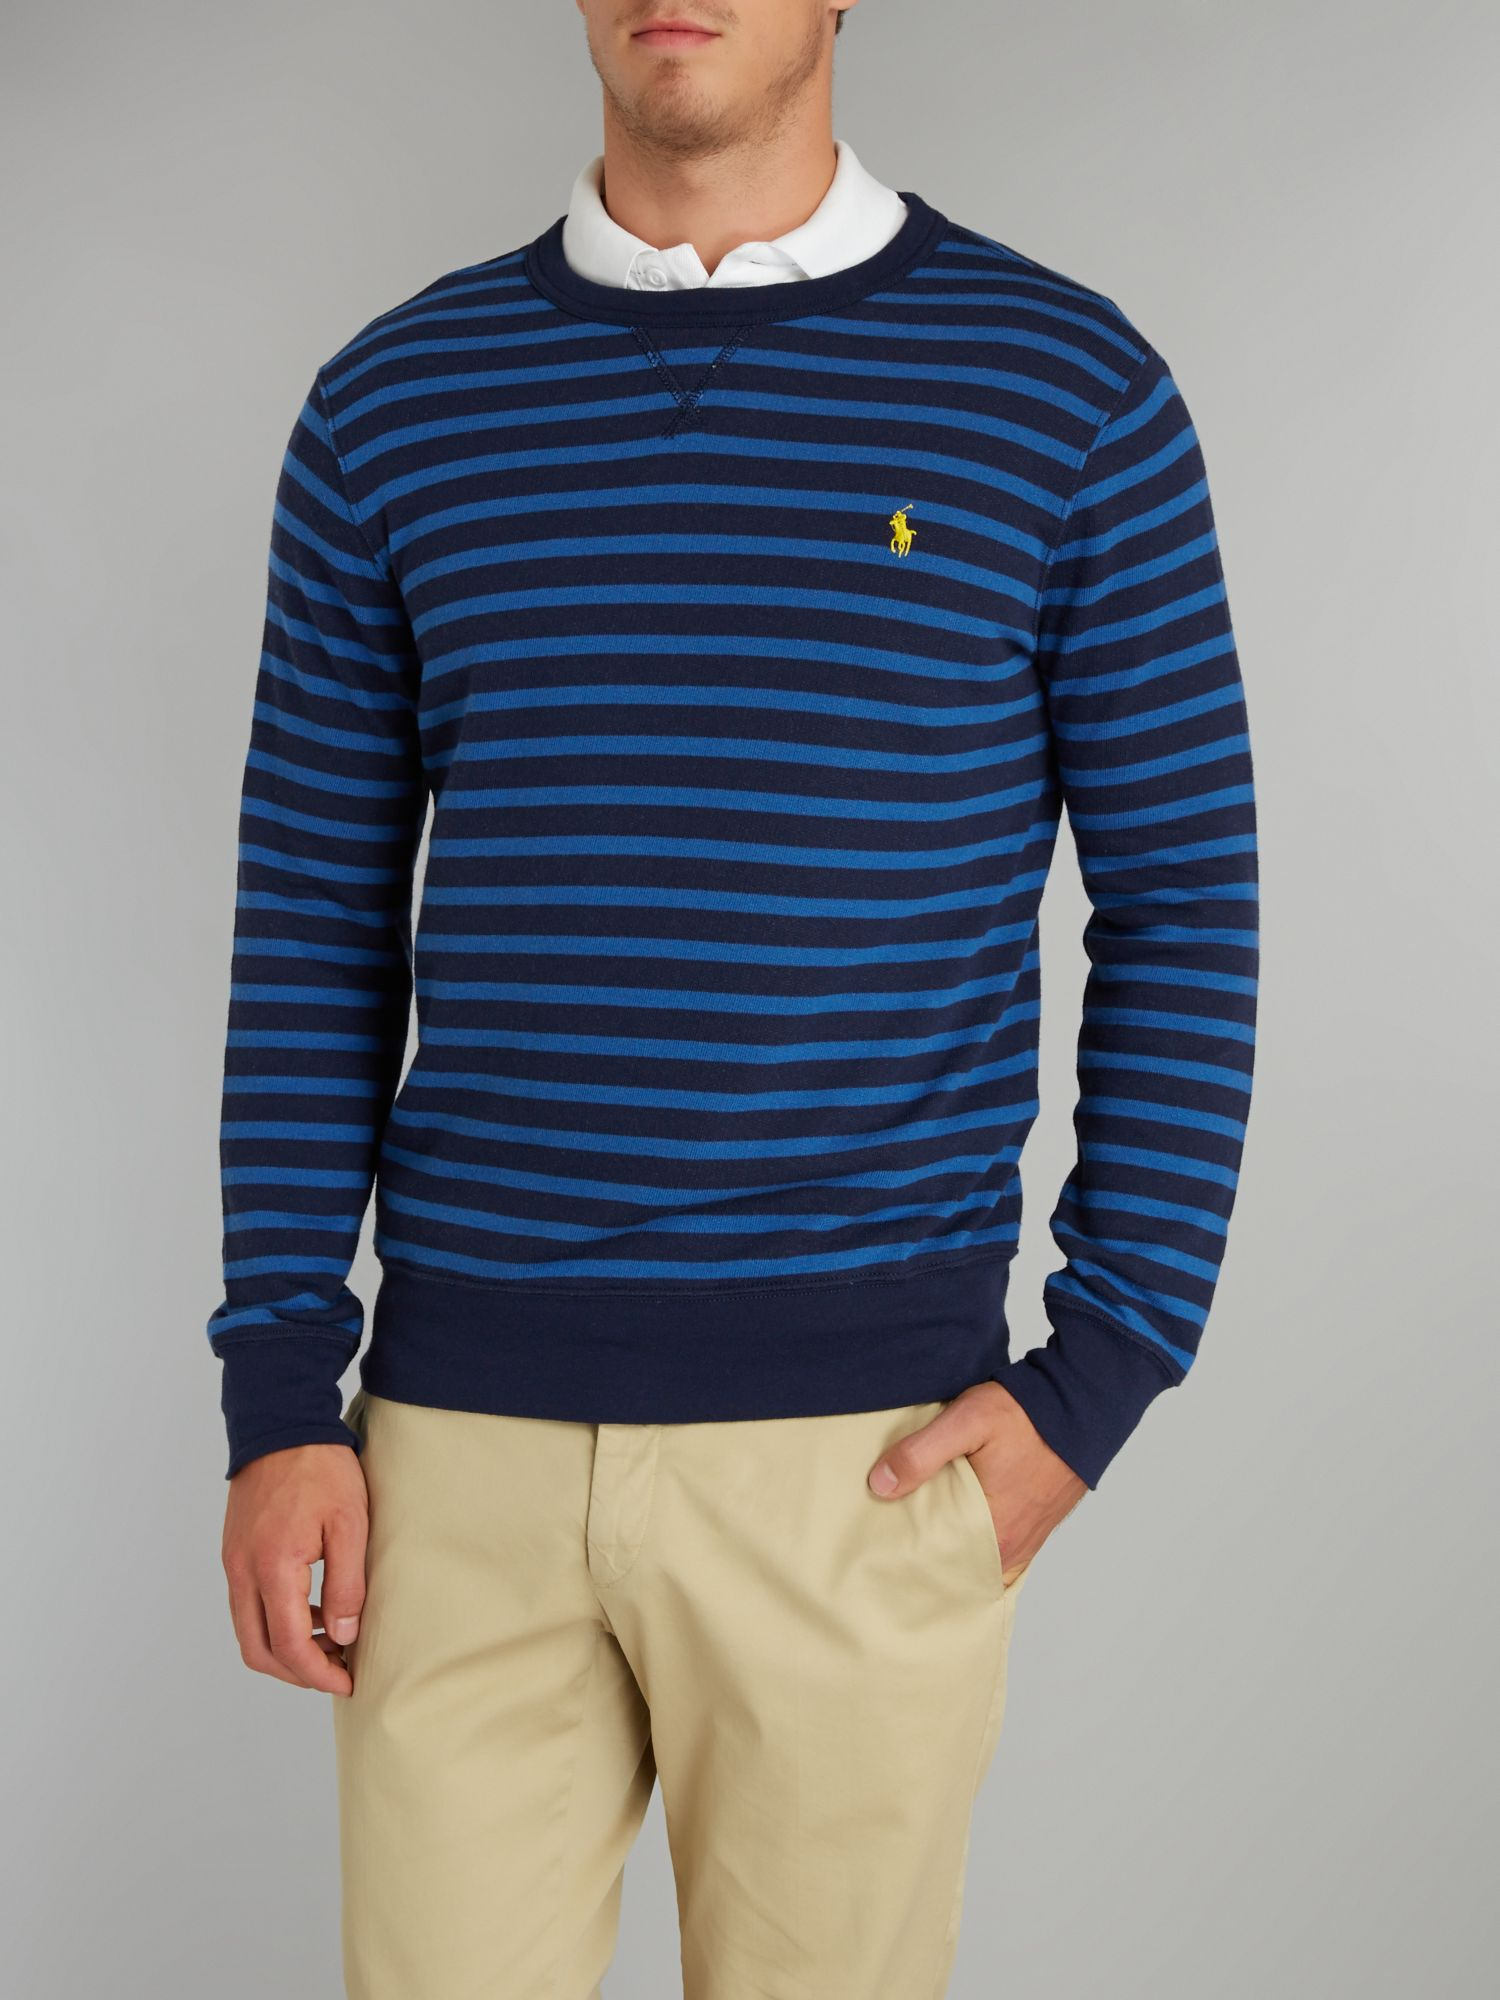 Striped crew neck sweatshirt